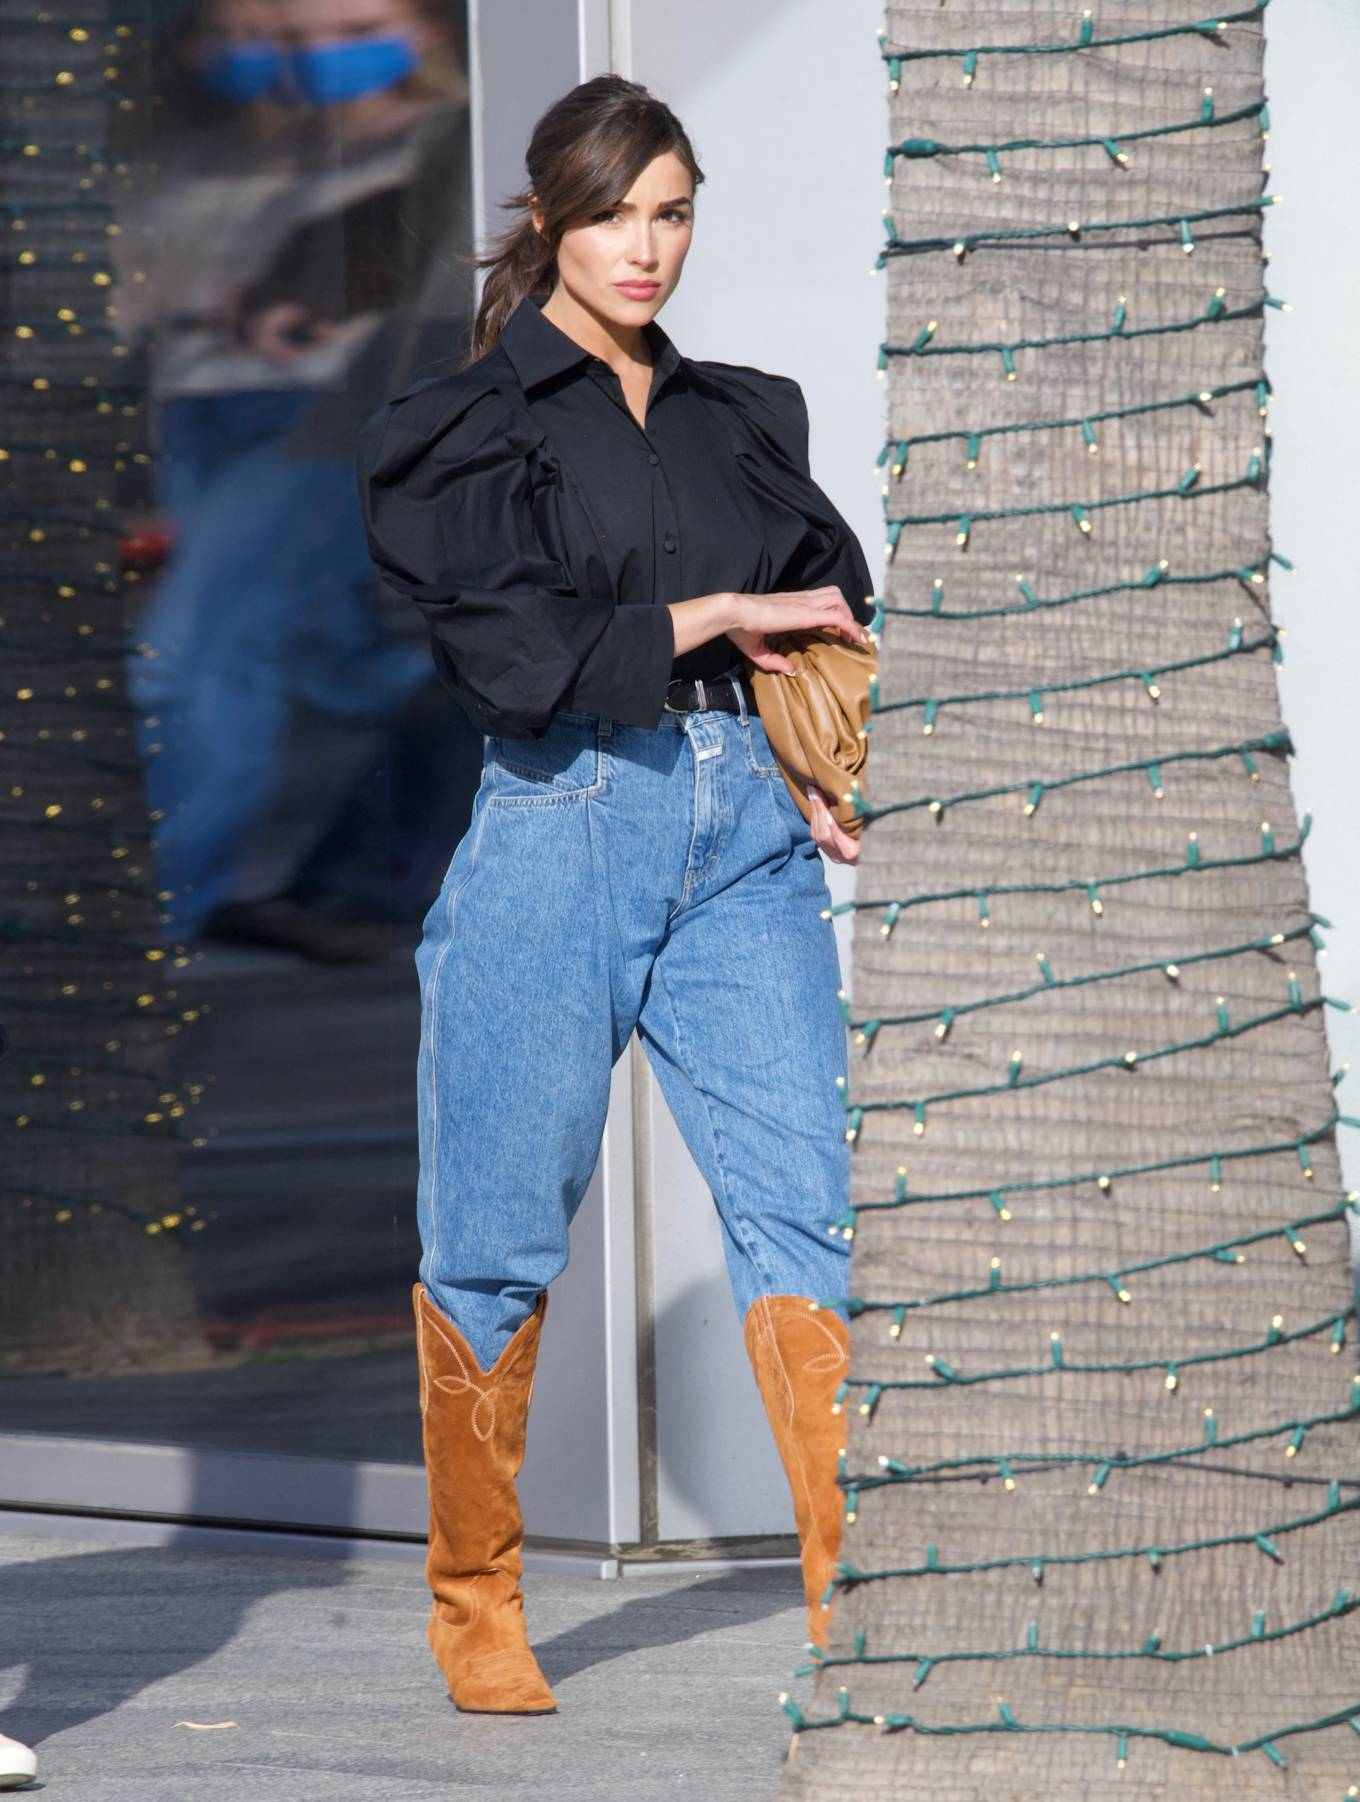 Olivia Culpo, brown boots, suede, oversized black blouse, Nude Bottega Veneta clutch, stitched, square, knee high, tan boots, blue jeans, heel, narrow, brown cowboy boots, kitten heel, tan cowboy boots. Olivia Culpo rocking stitched brown tan knee high cowboy boots with kitten heel